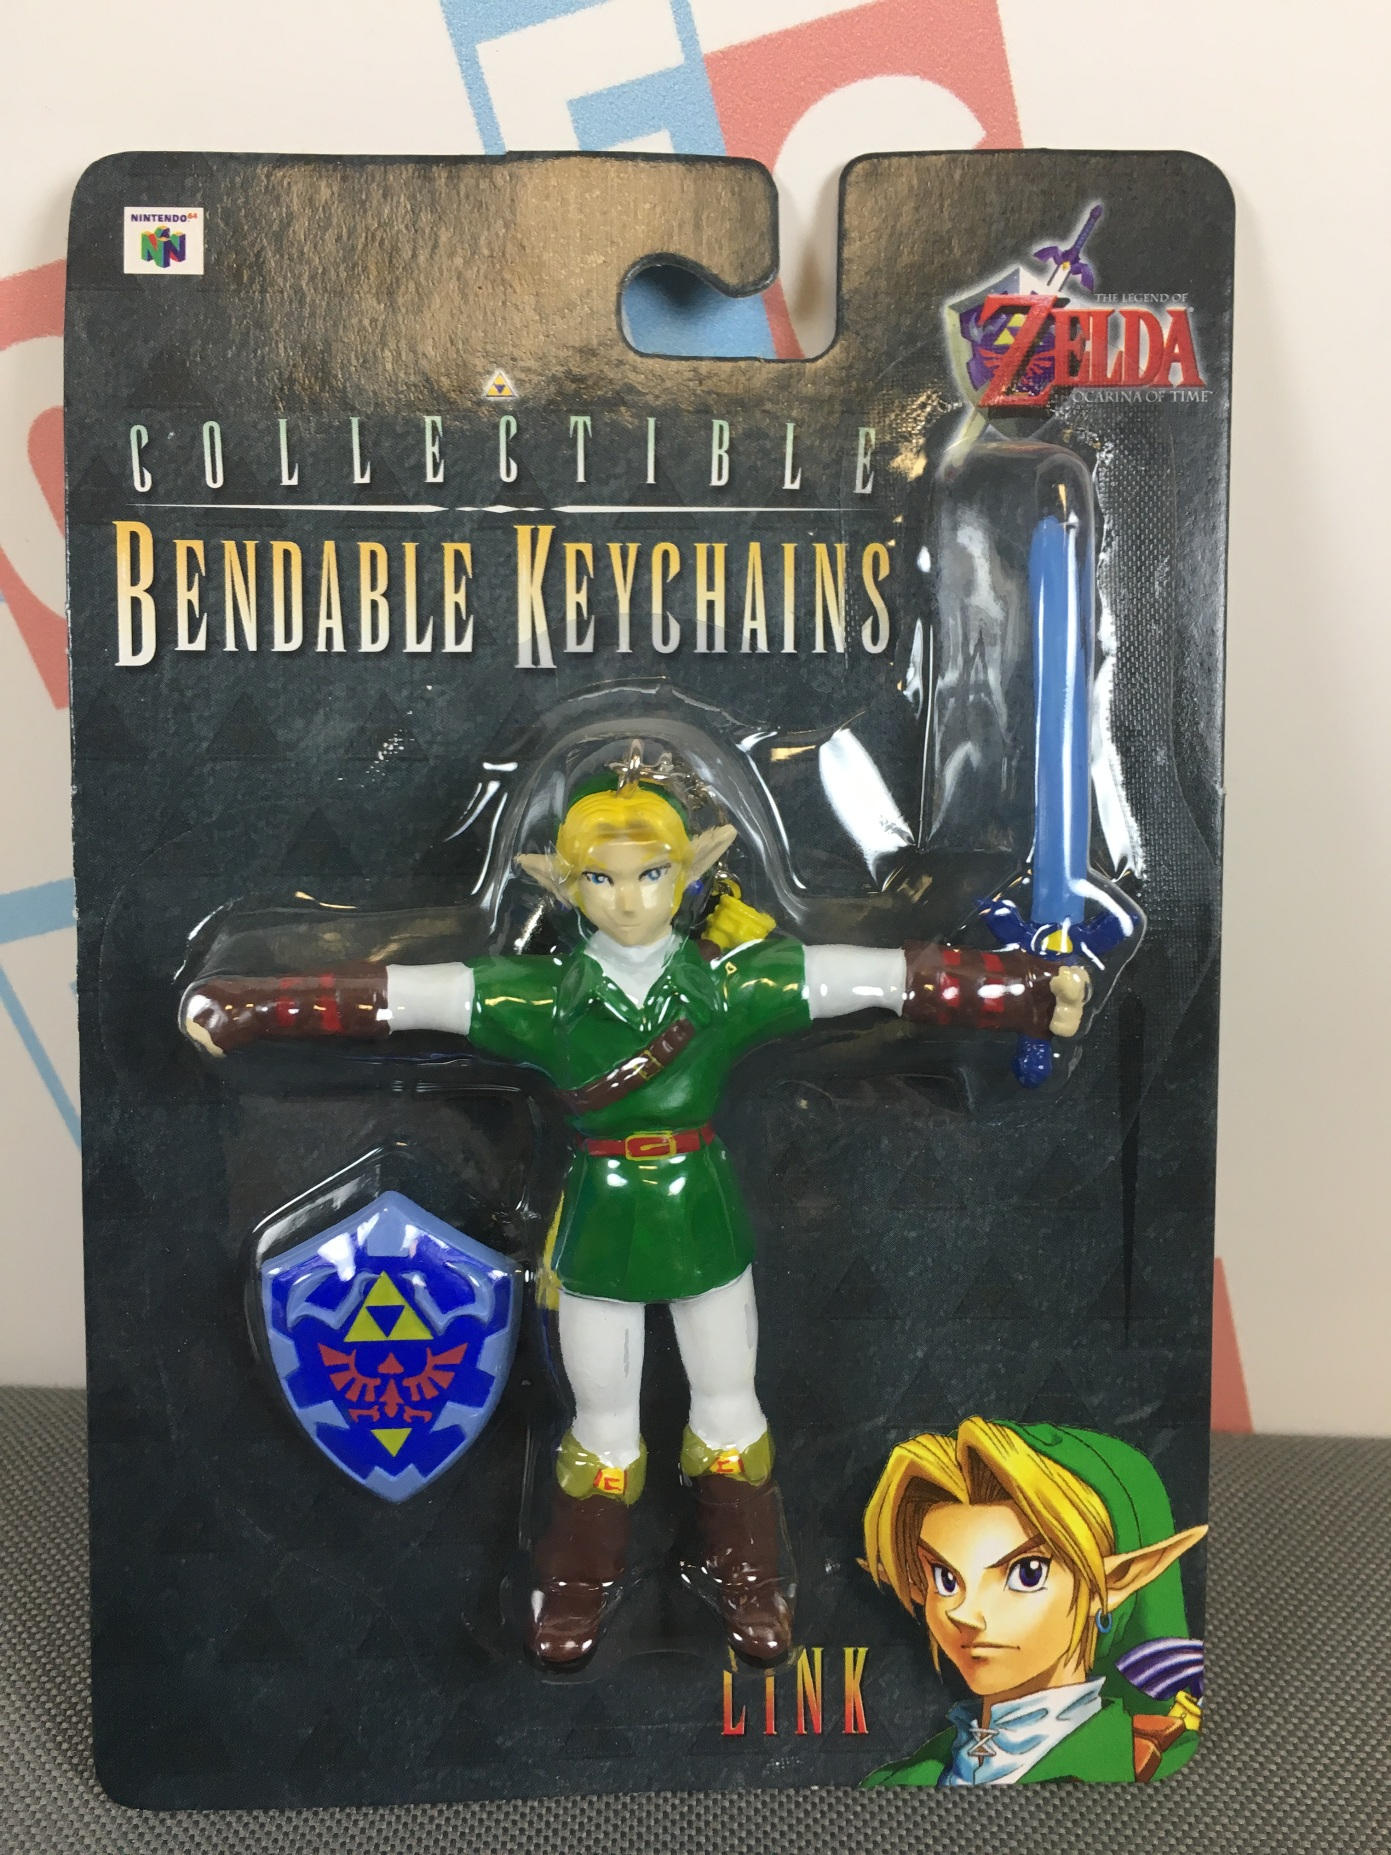 Link (Bendable Keychain)